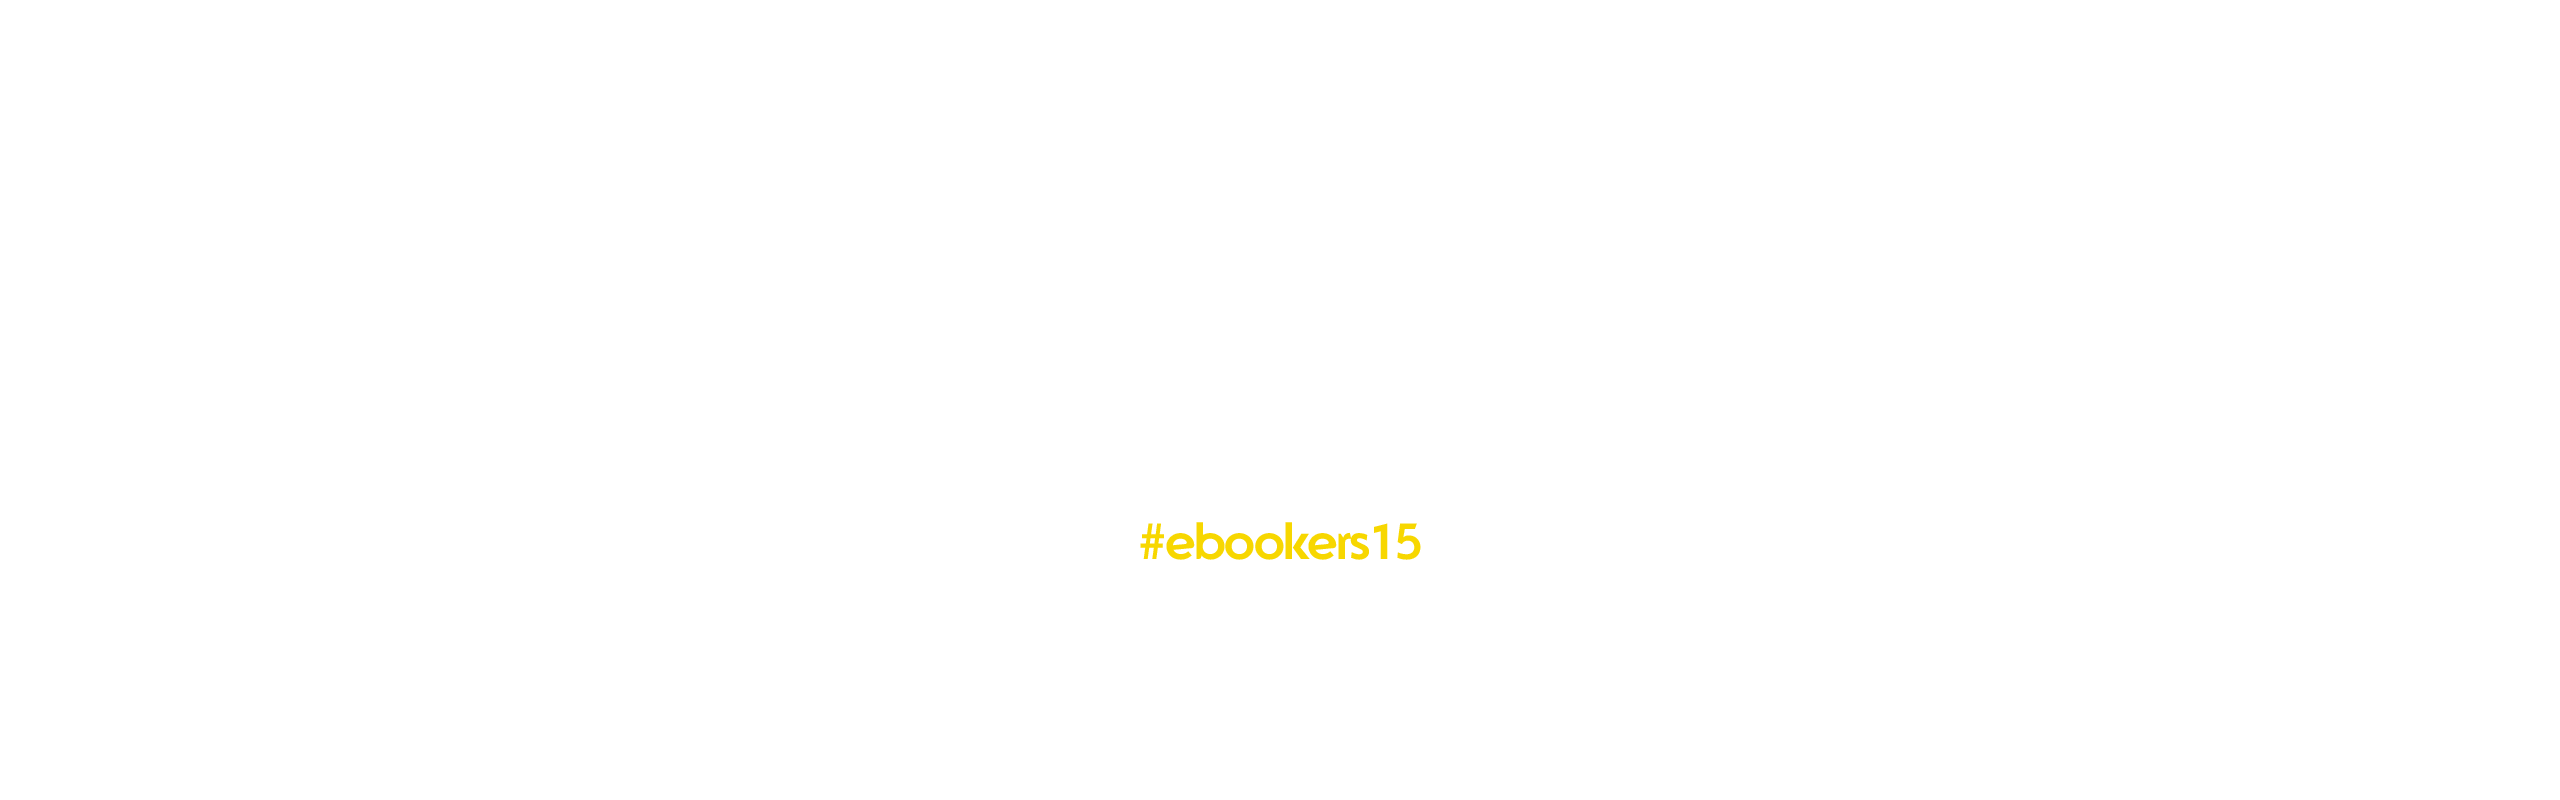 eBookers // 15yrs in Switzerland